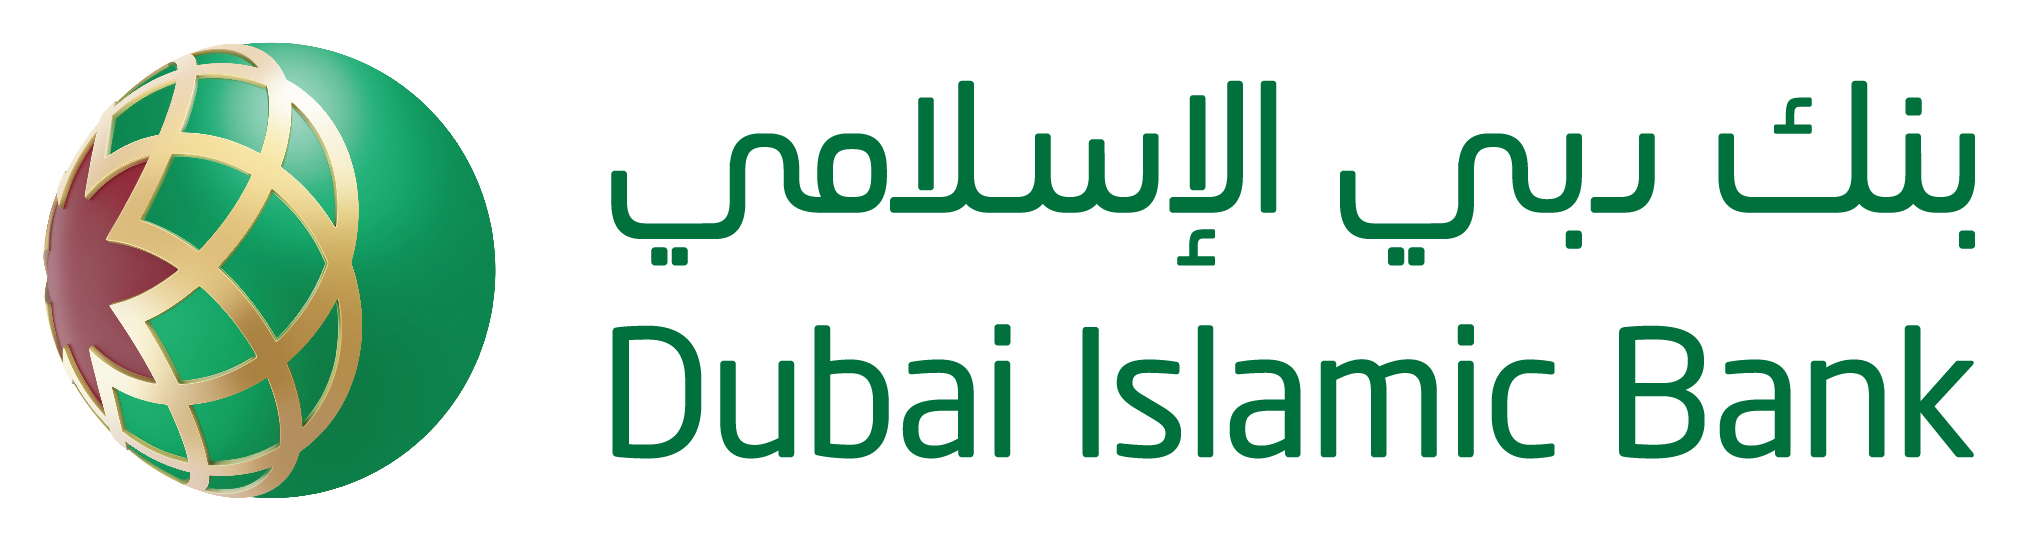 Dubai Islamic Bank - Al Islami Home Finance Mohammed Bin Rashid Housing Establishment (Ready Property)